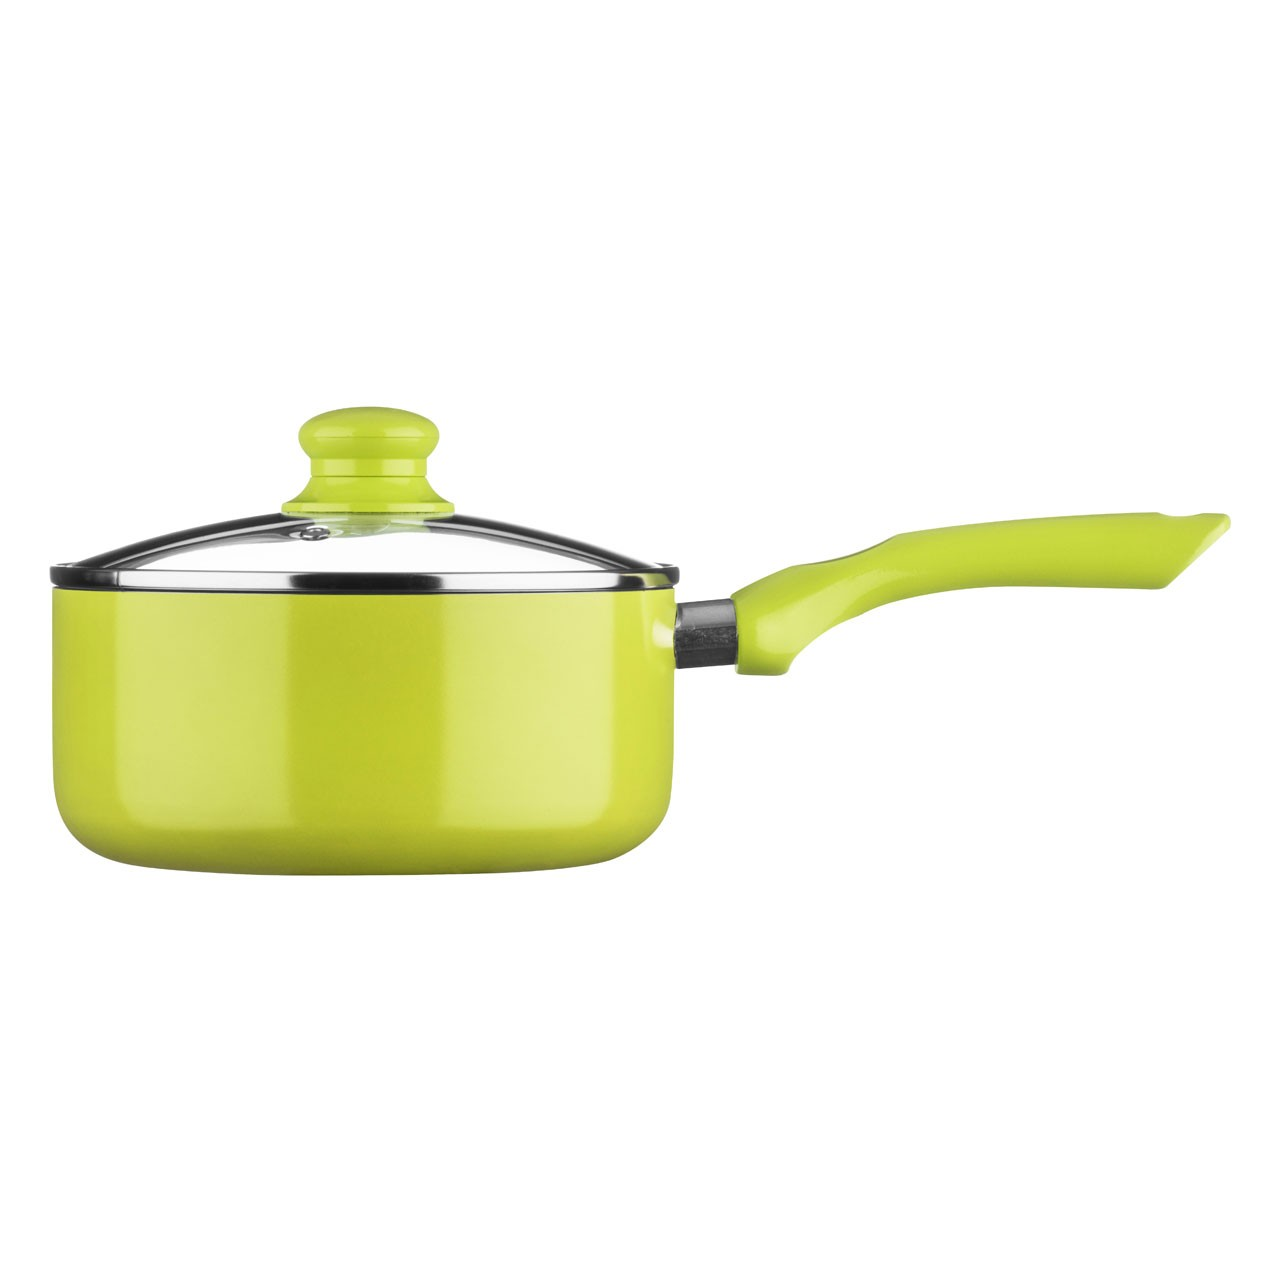 Ecocook Saucepan with Glass Lid, 20 cm - Lime Green